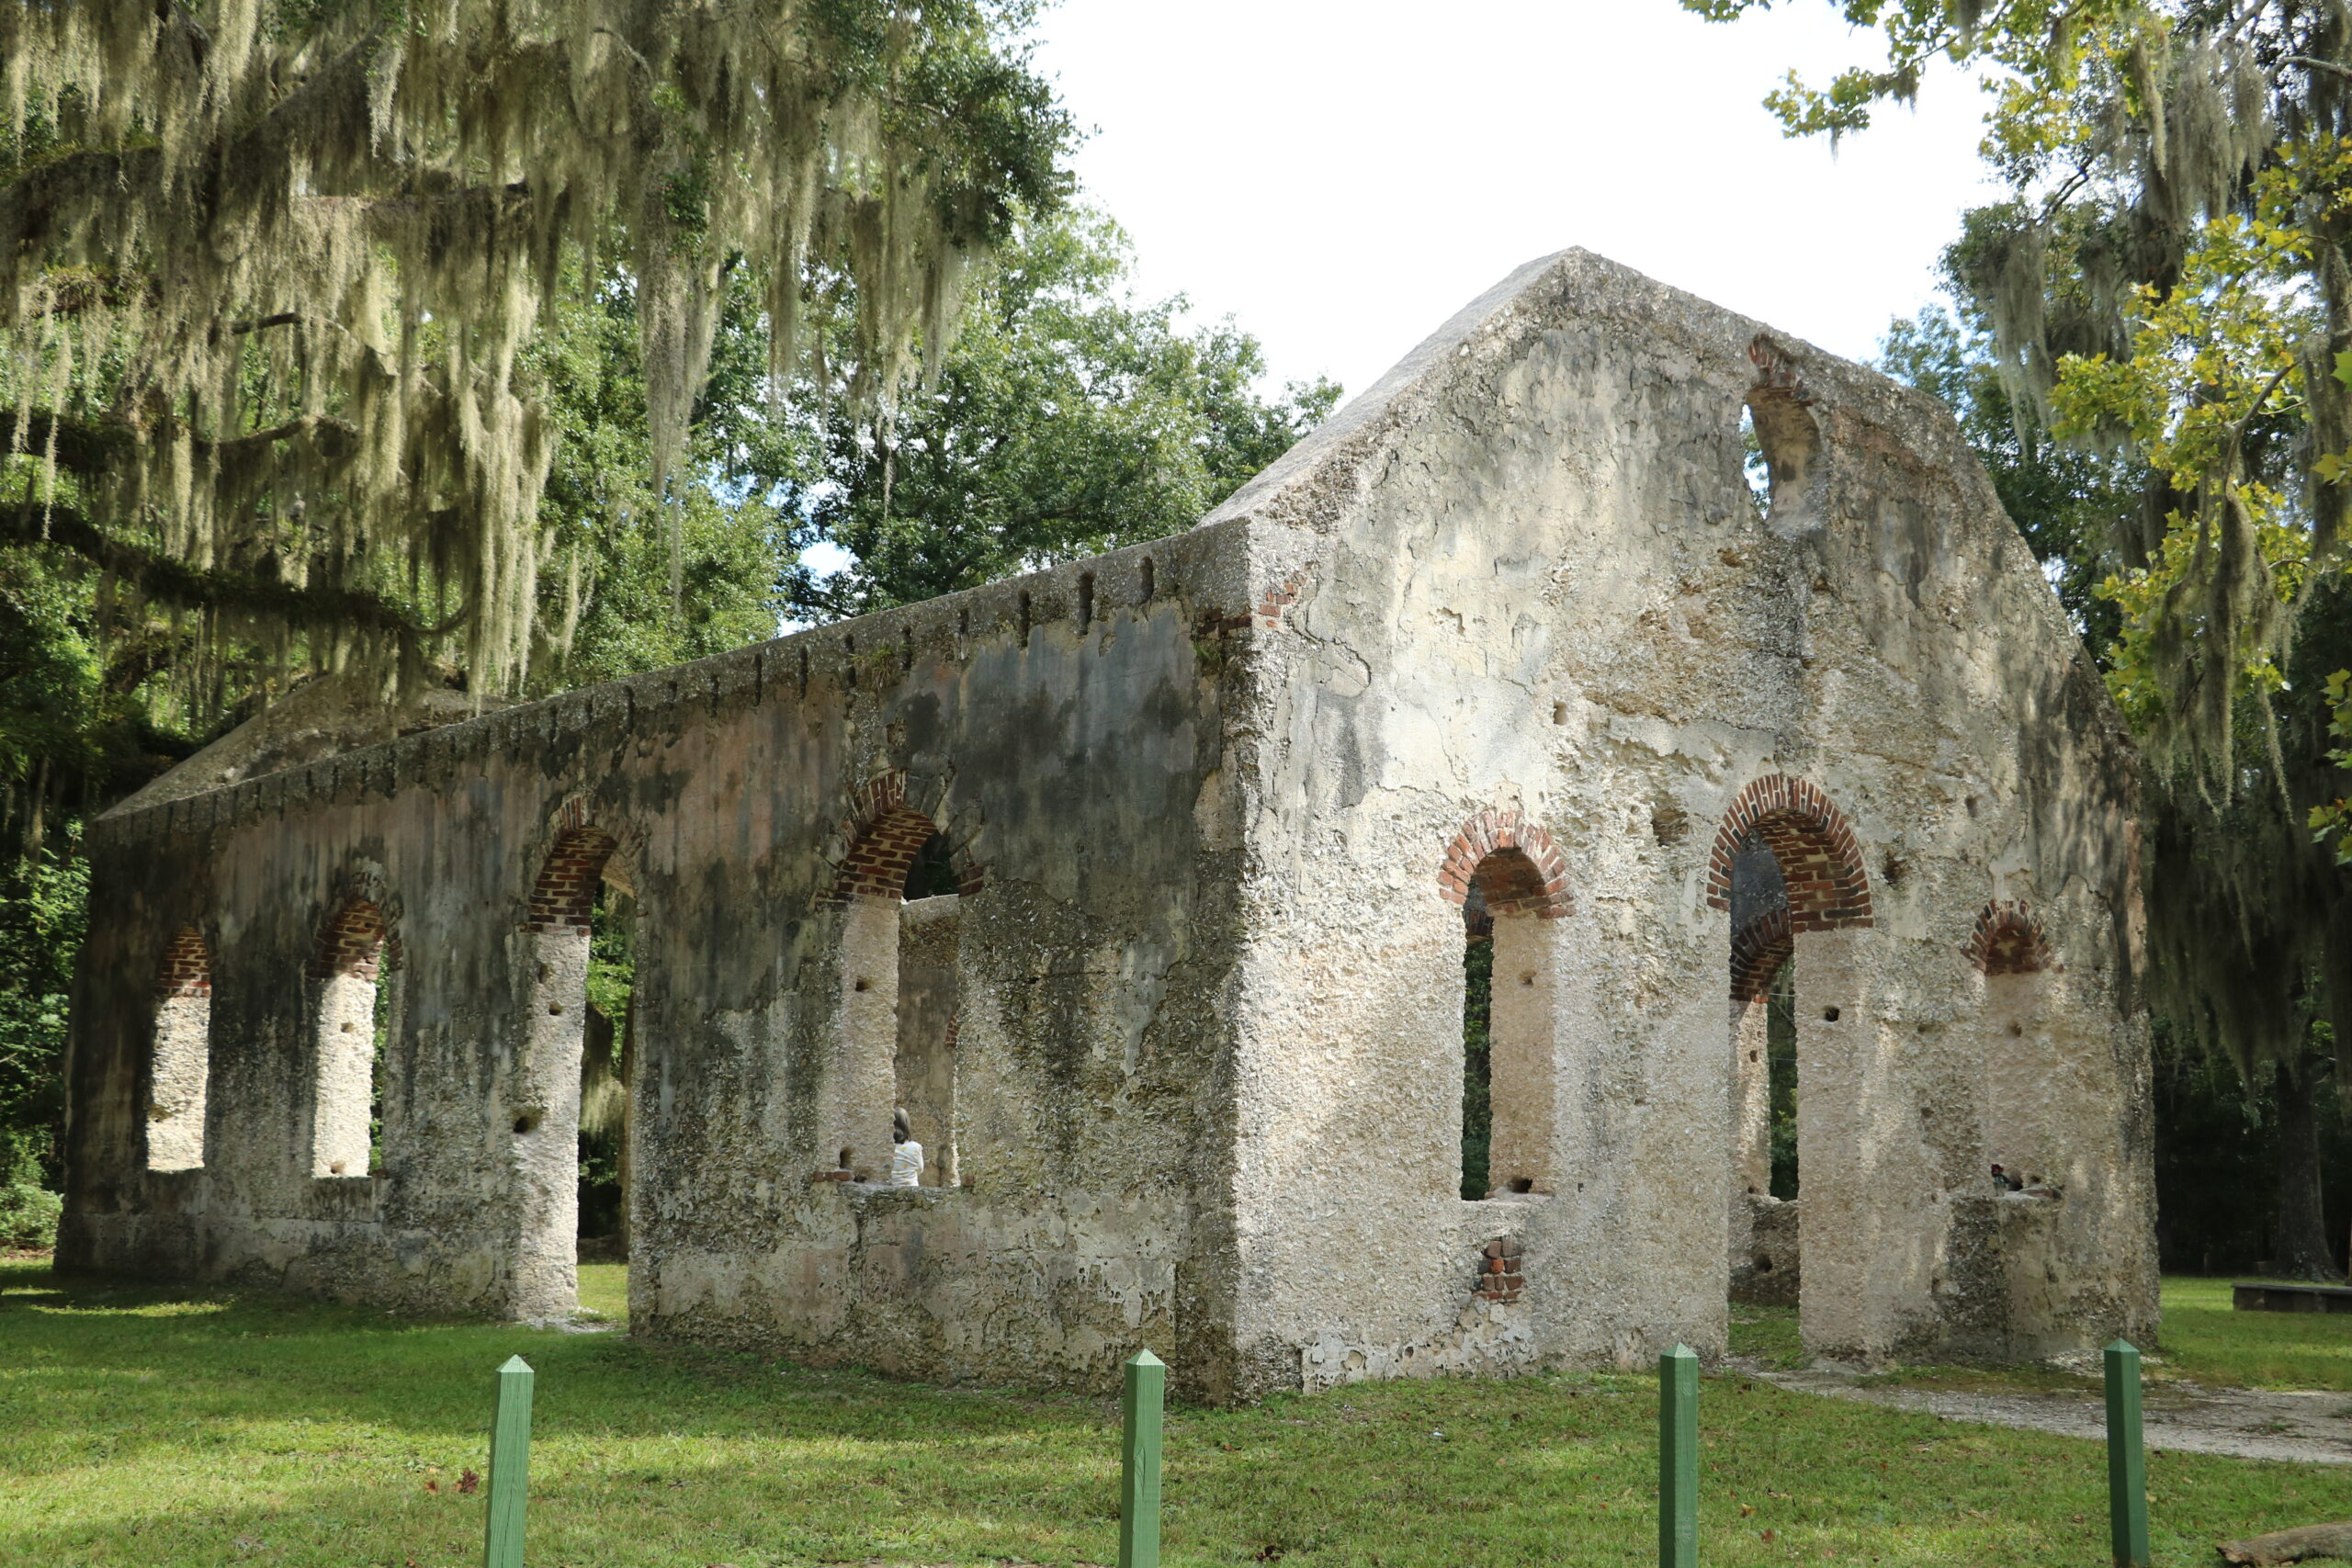 The story of St. Helena Island's Historic Chapel of Ease